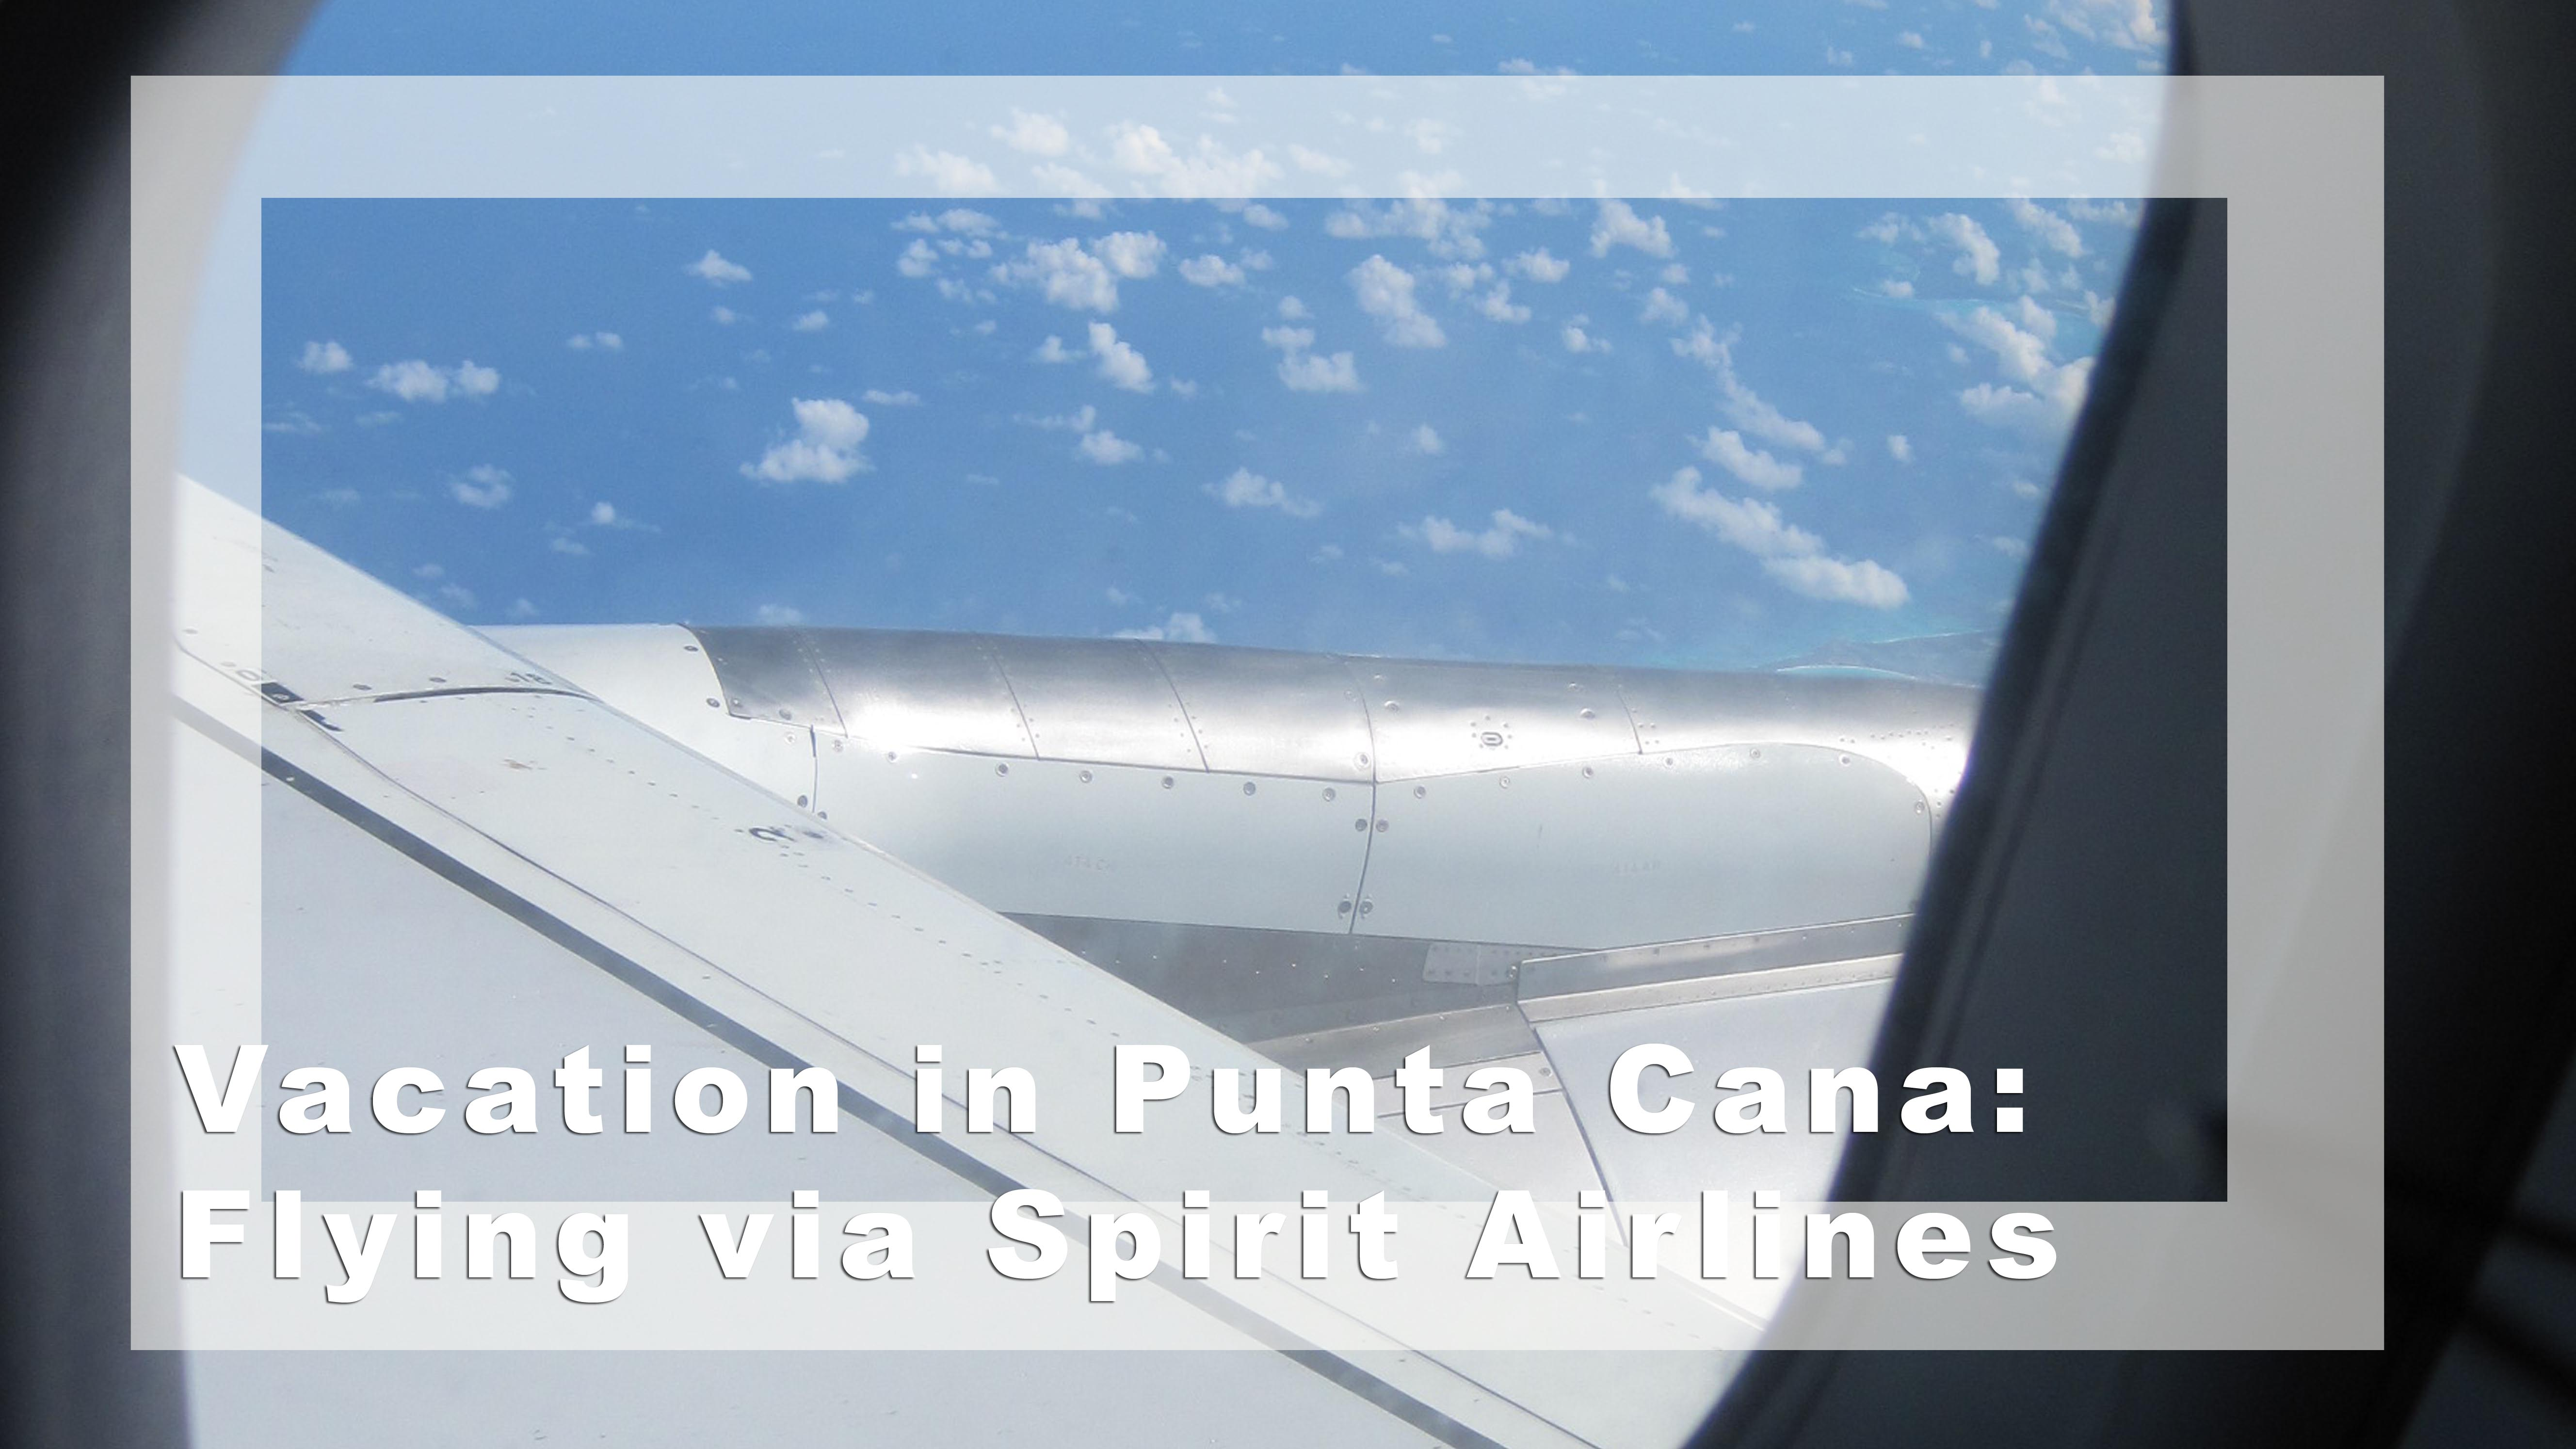 Vacation in Punta Cana: The flight via Spirit Airlines